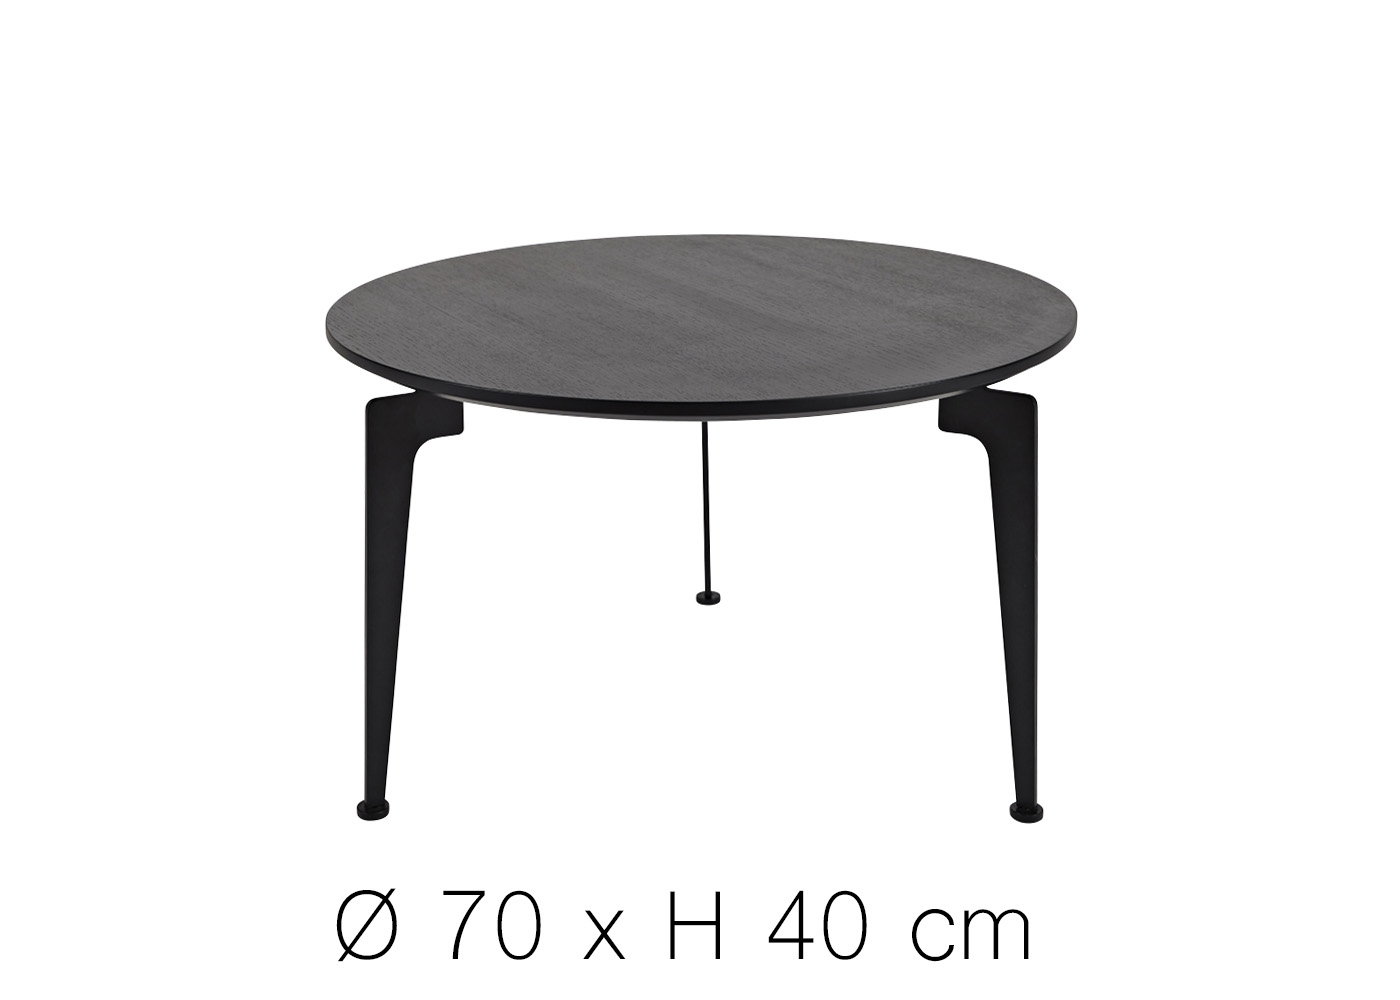 table basse de salon moderne et de qualit chez ksl living. Black Bedroom Furniture Sets. Home Design Ideas